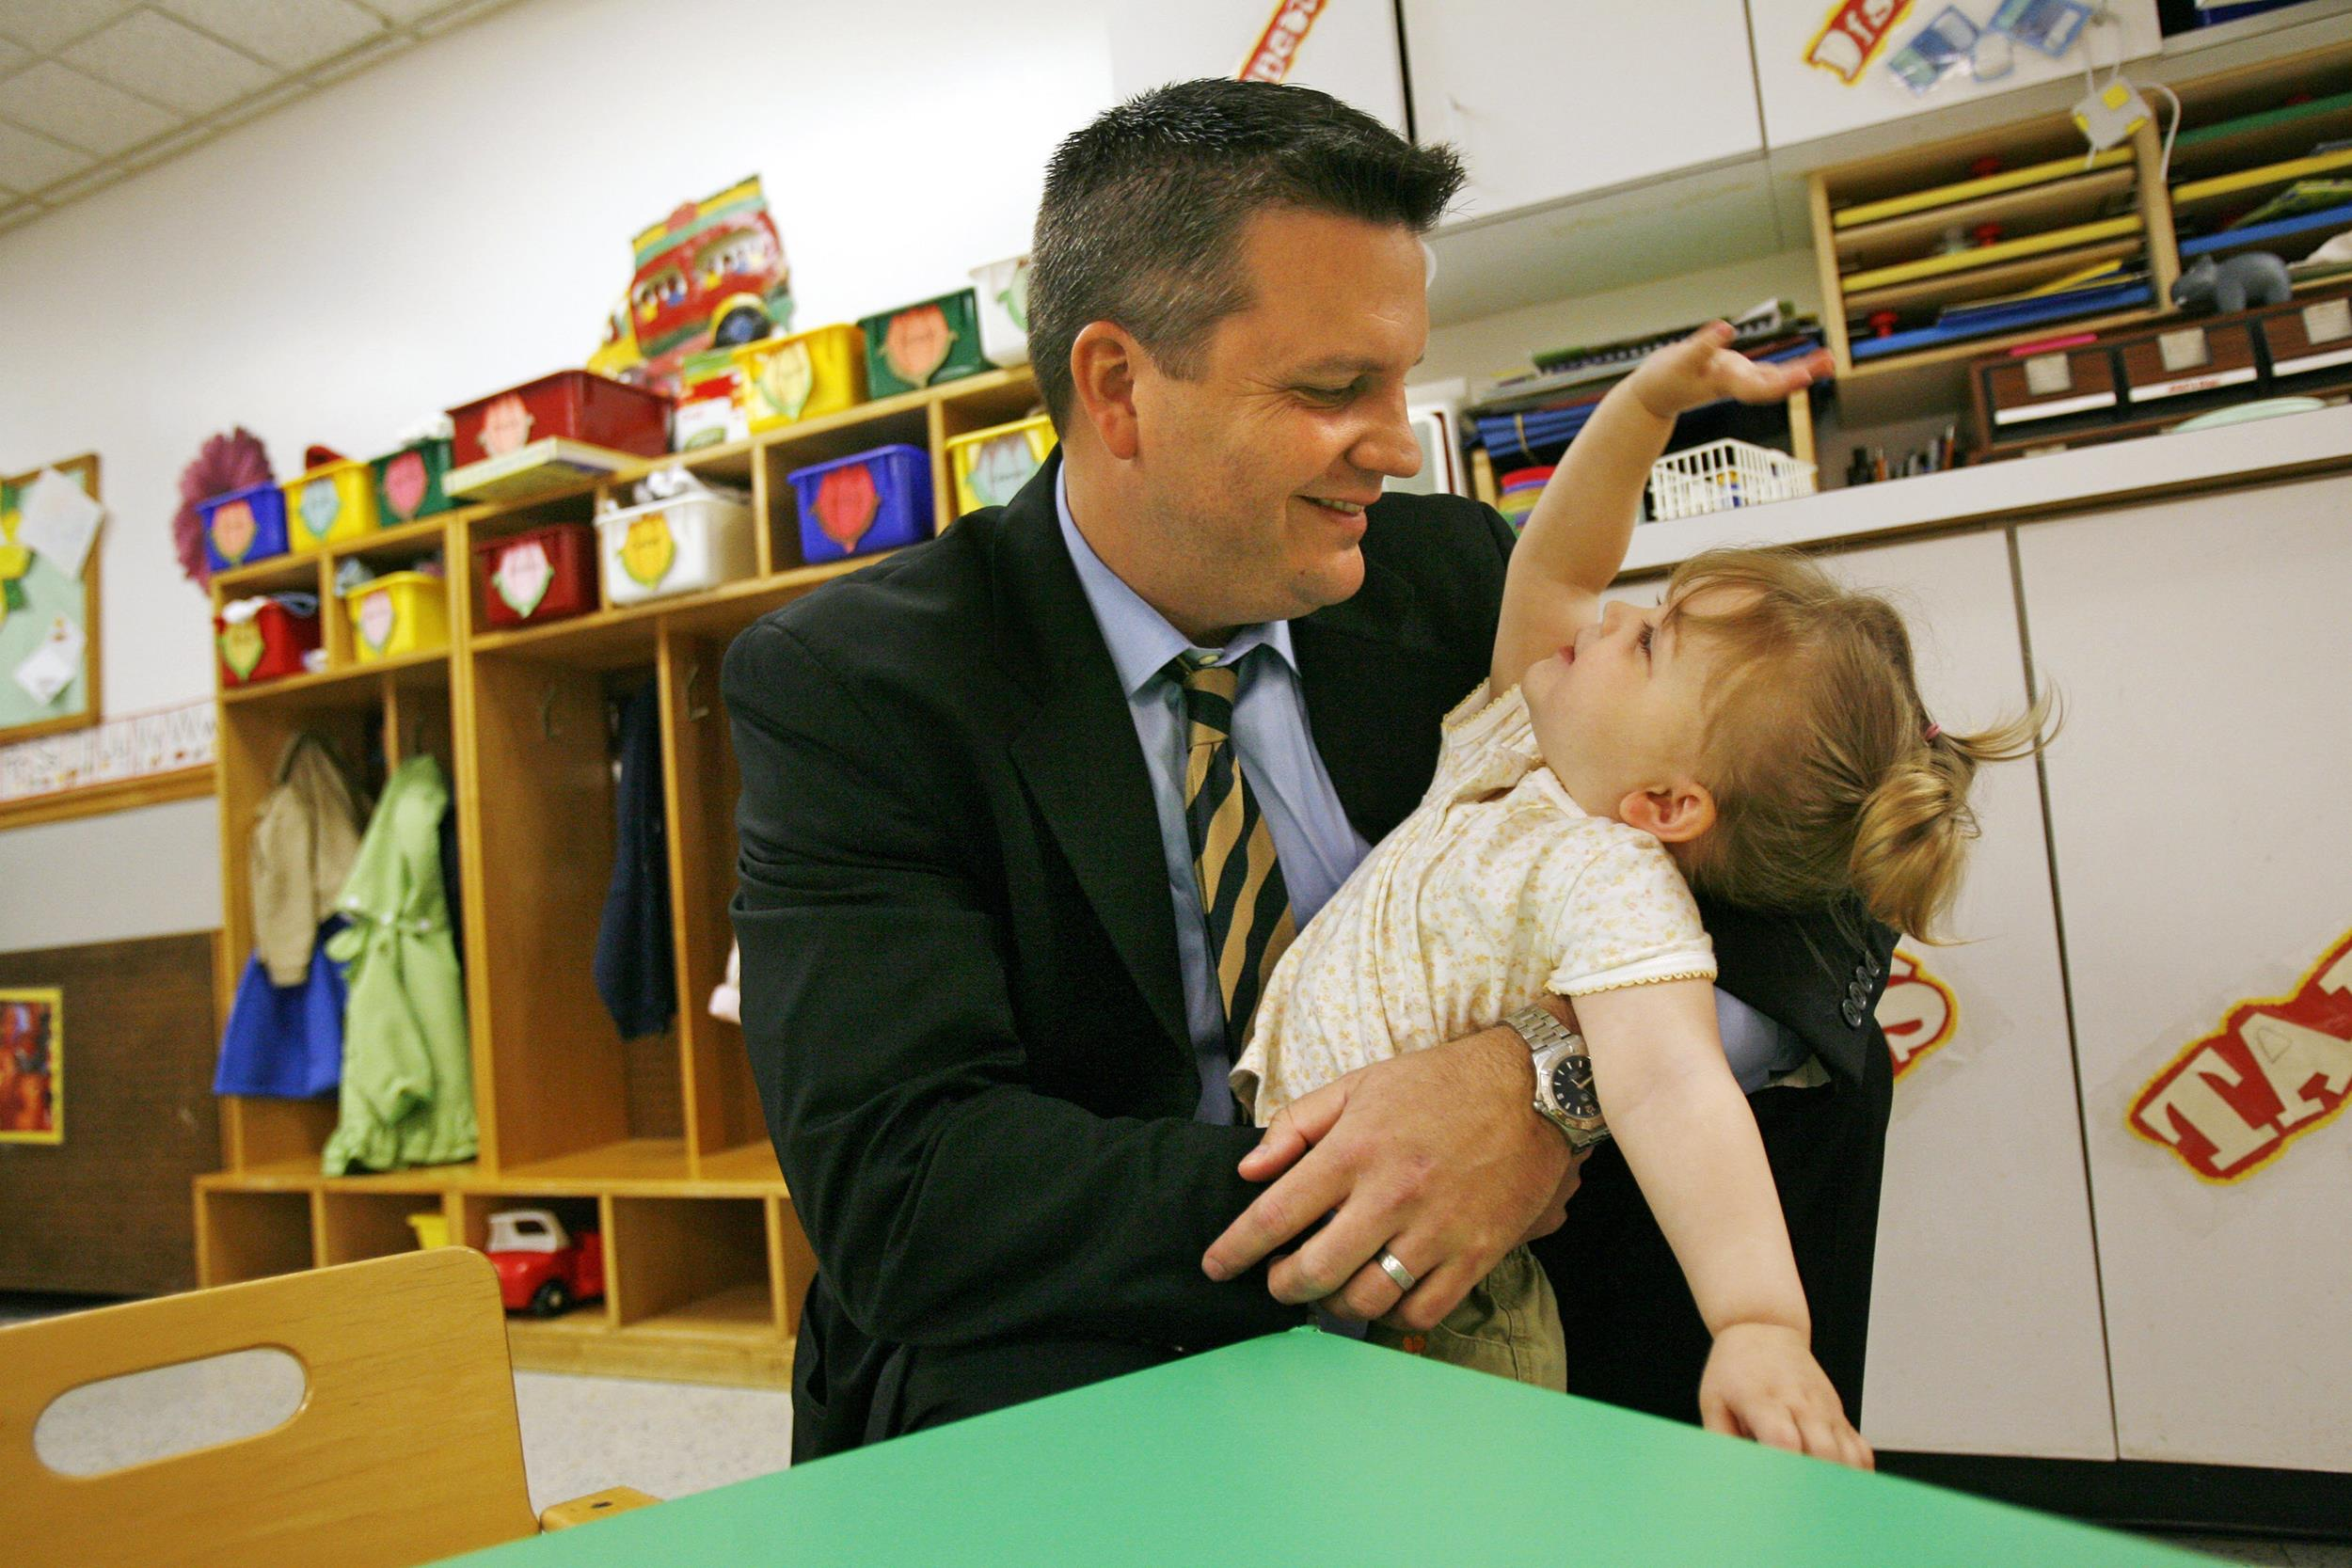 Why Families Face So Many Child Care Struggles - NBC News